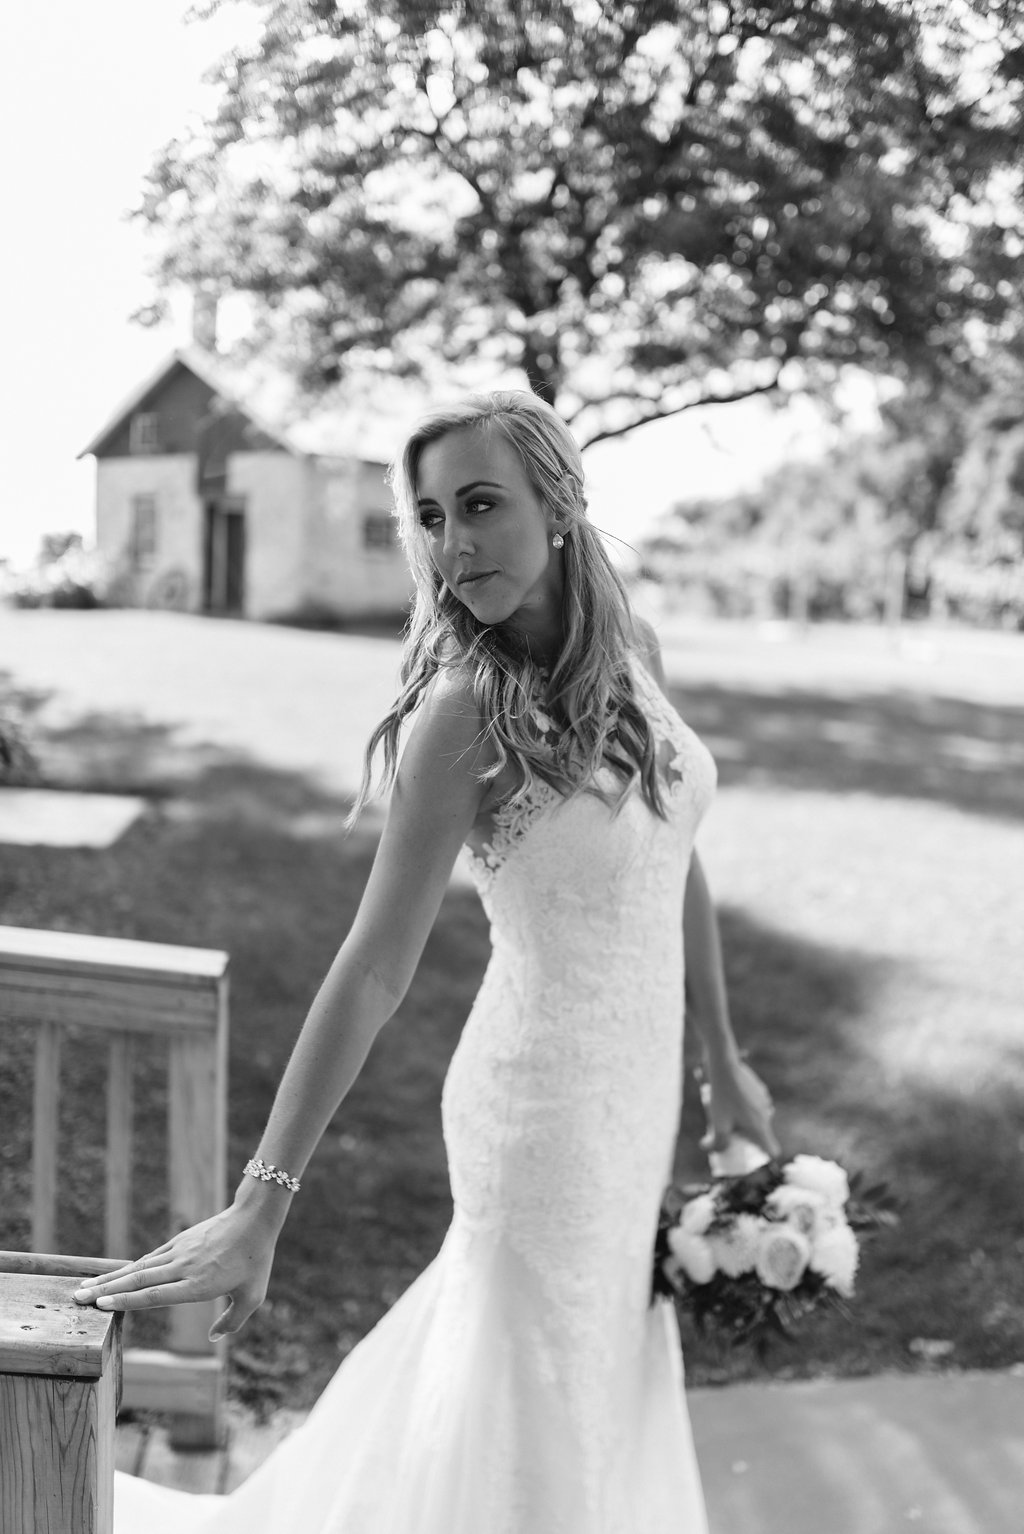 OVER-THE-VINES-WEDDING-PHOTOGRAPHY-BY-MEGAN-SAUL-PHOTOGRAPHY-FIRST-LOOK-AND-PORTRAITS(300of317).jpg